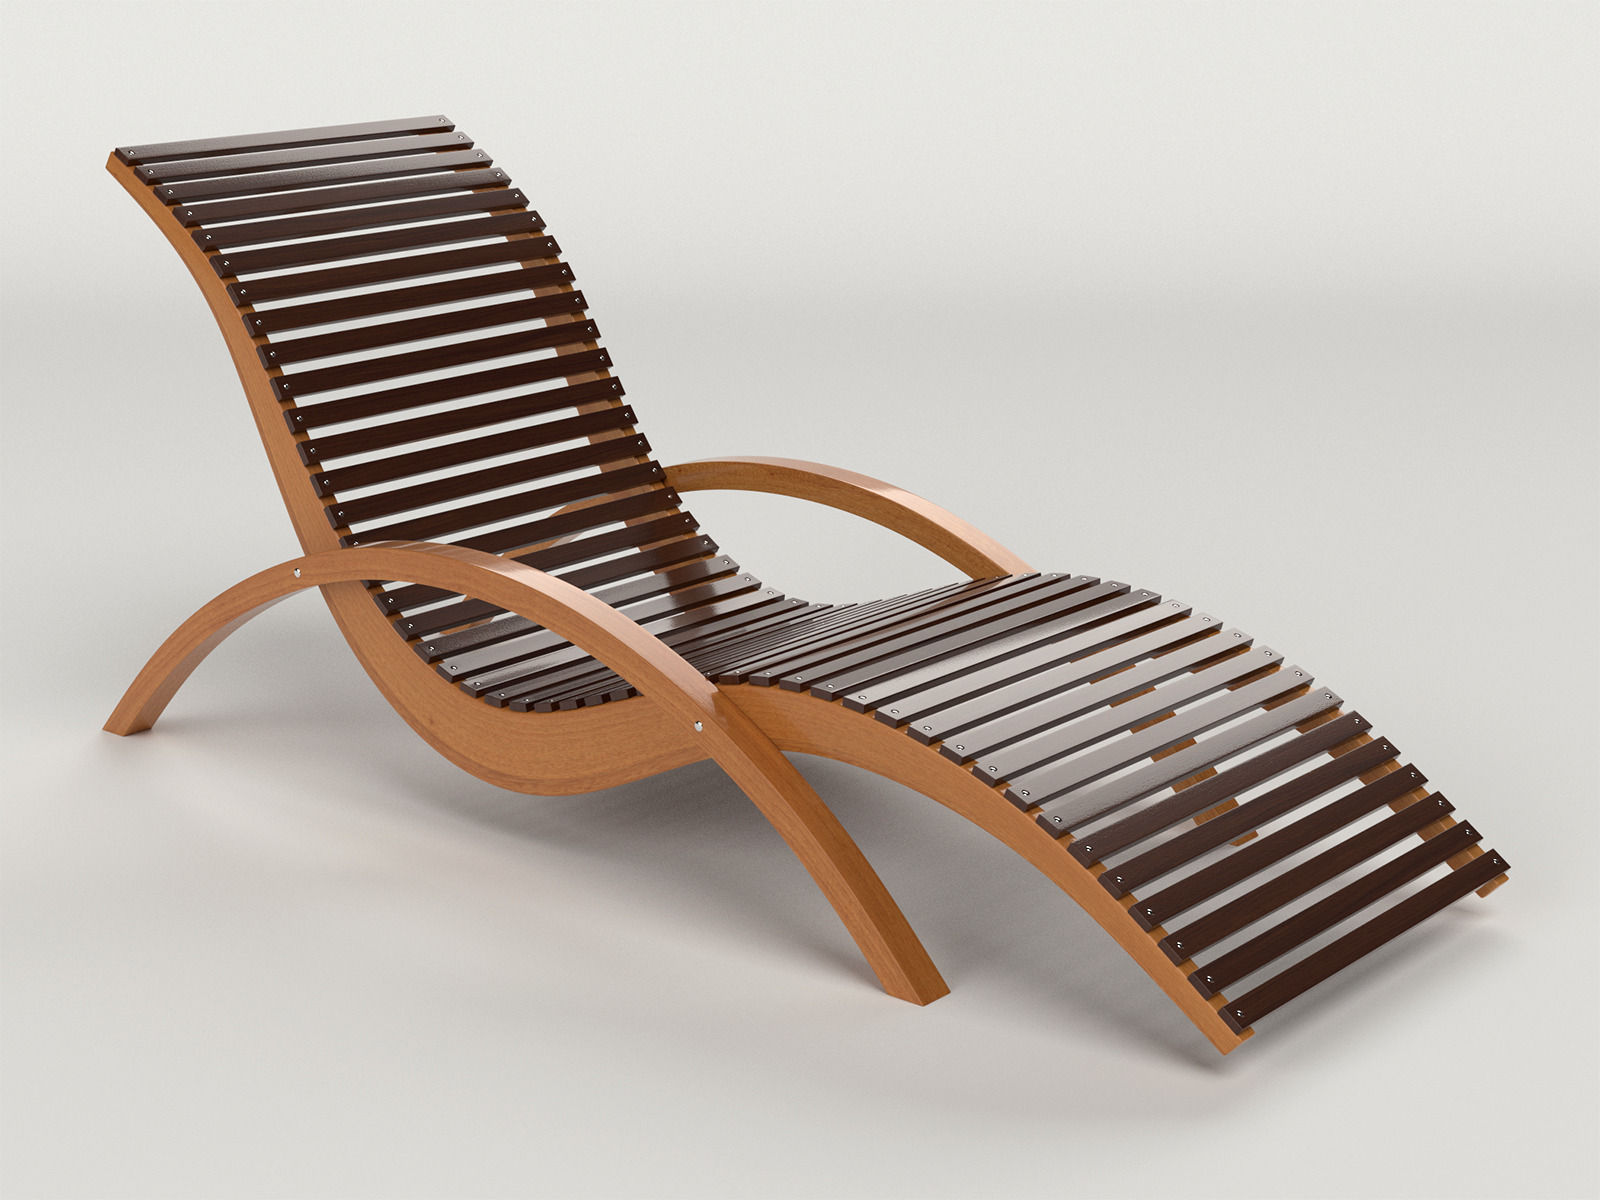 s d models furniture chair lounge chair outdoor wood patio deck